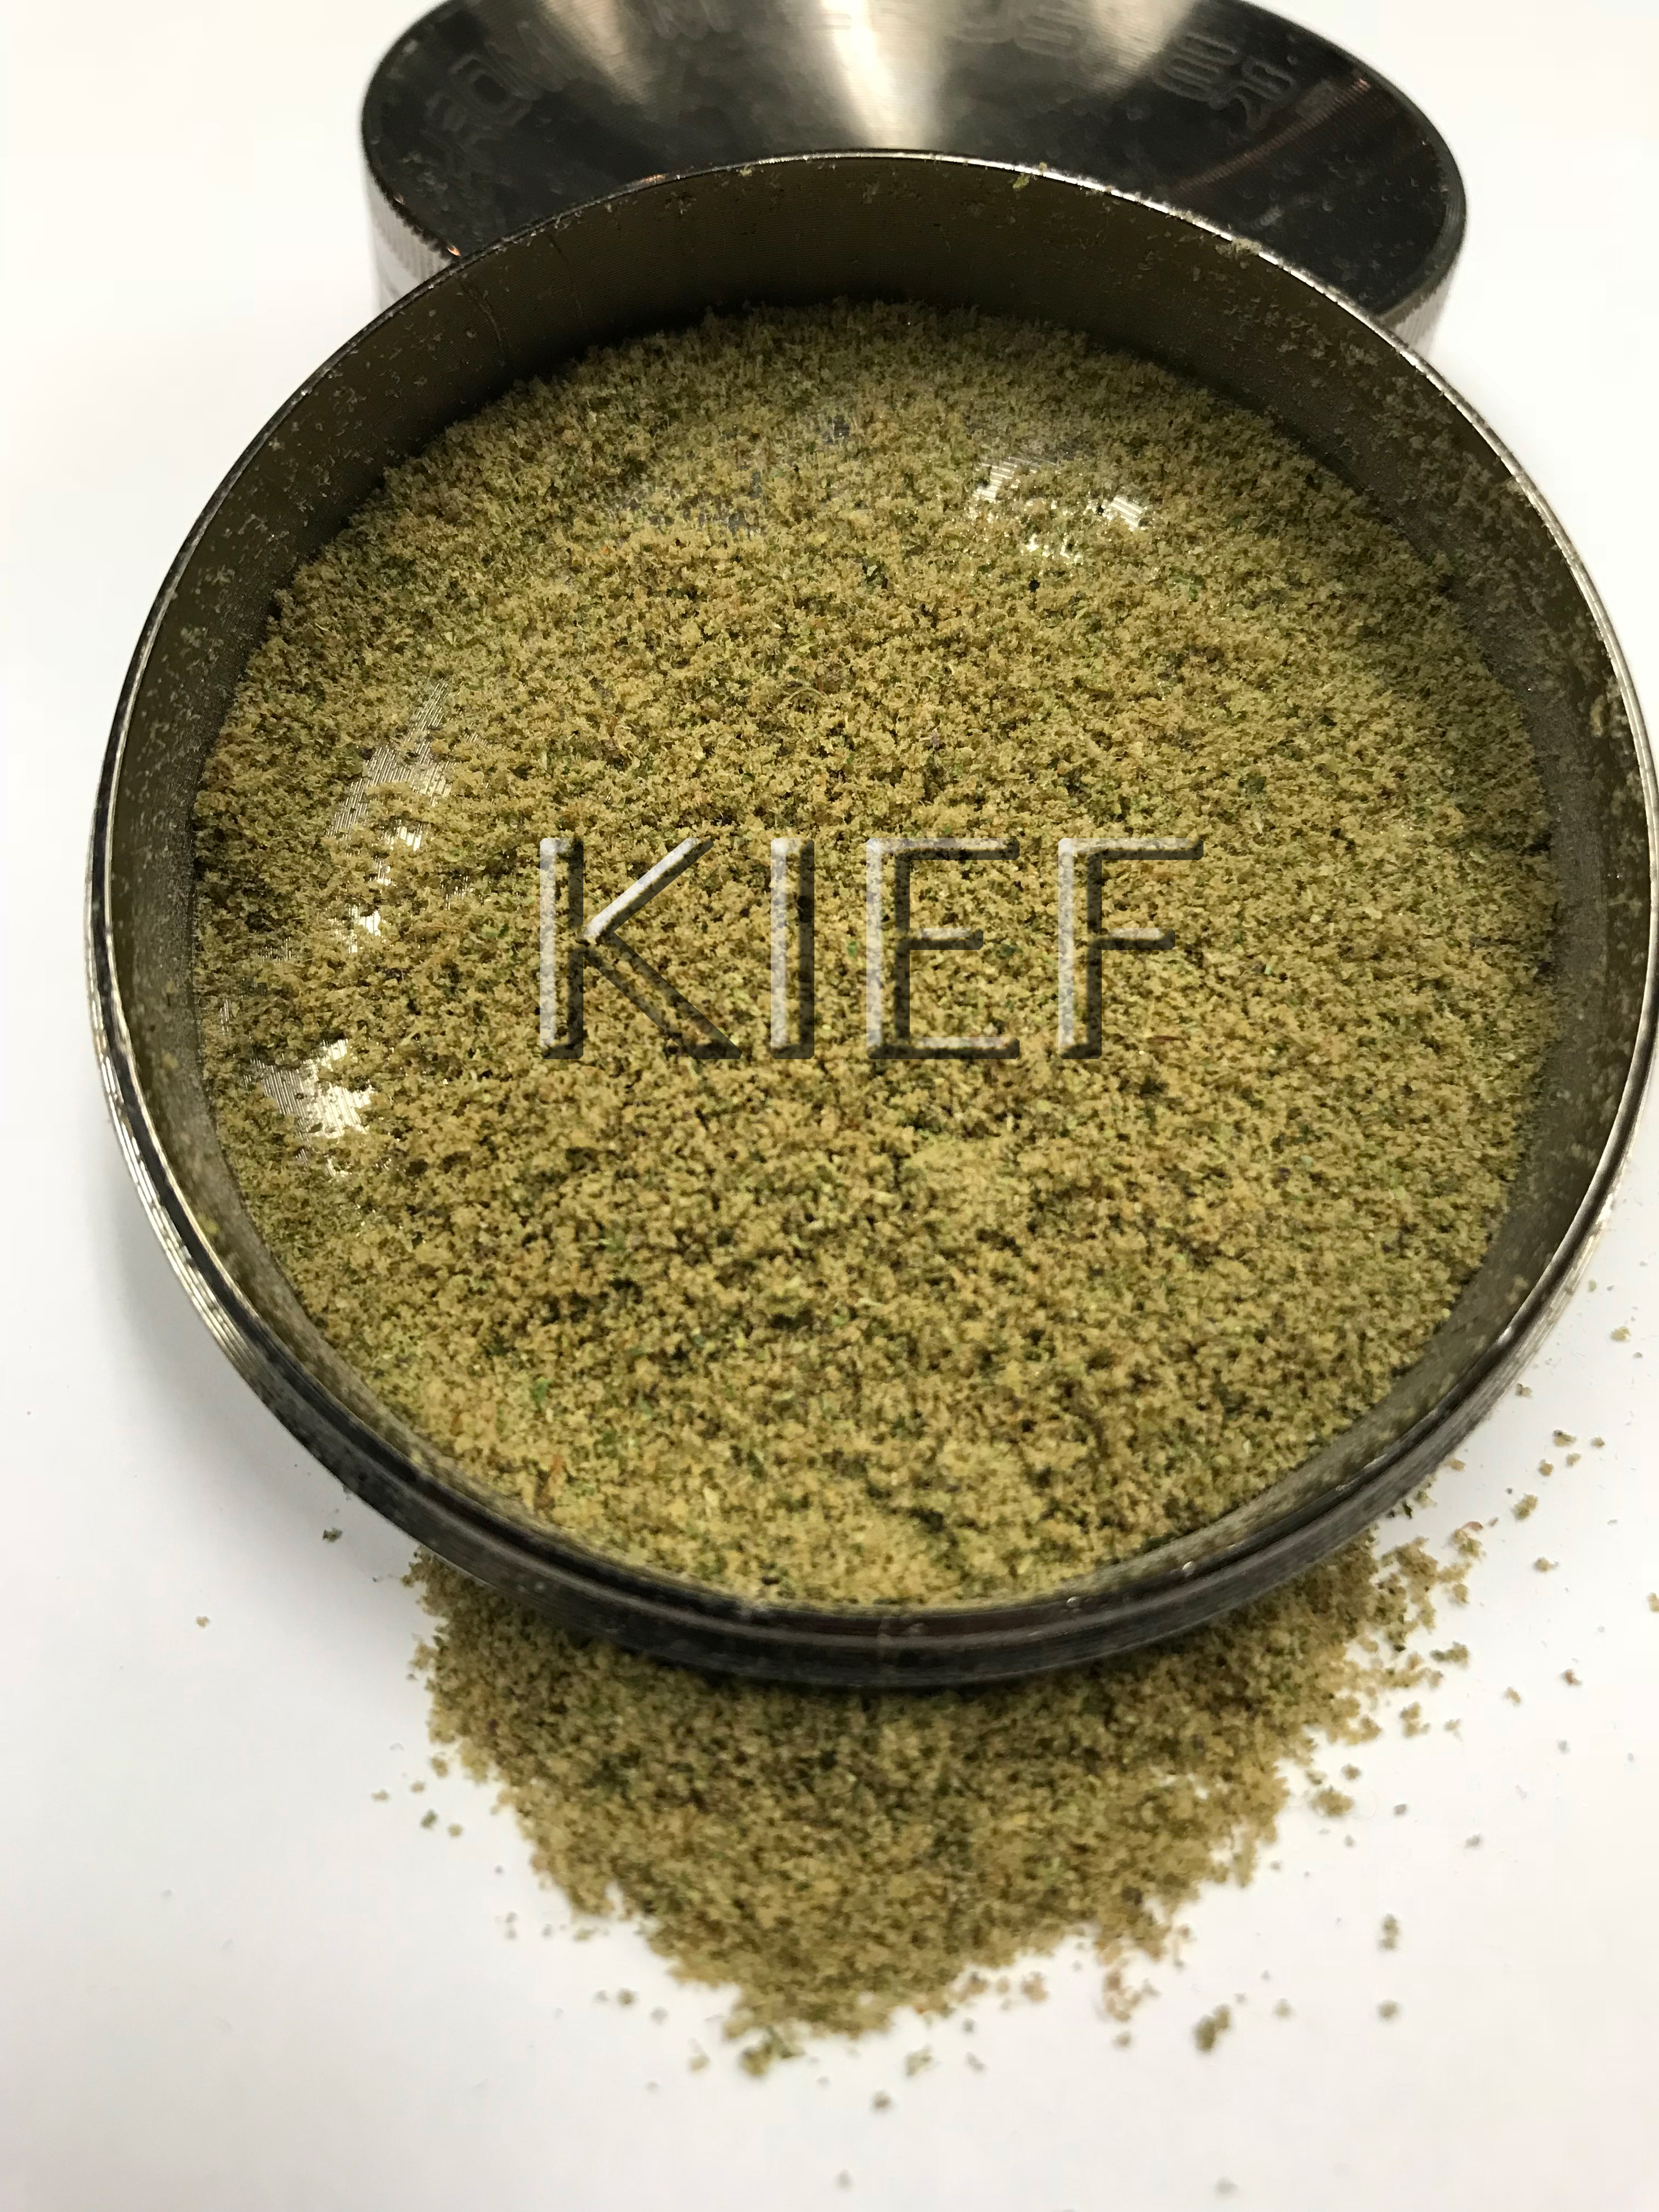 kief-cannabis-dust-tucson-saints-2018